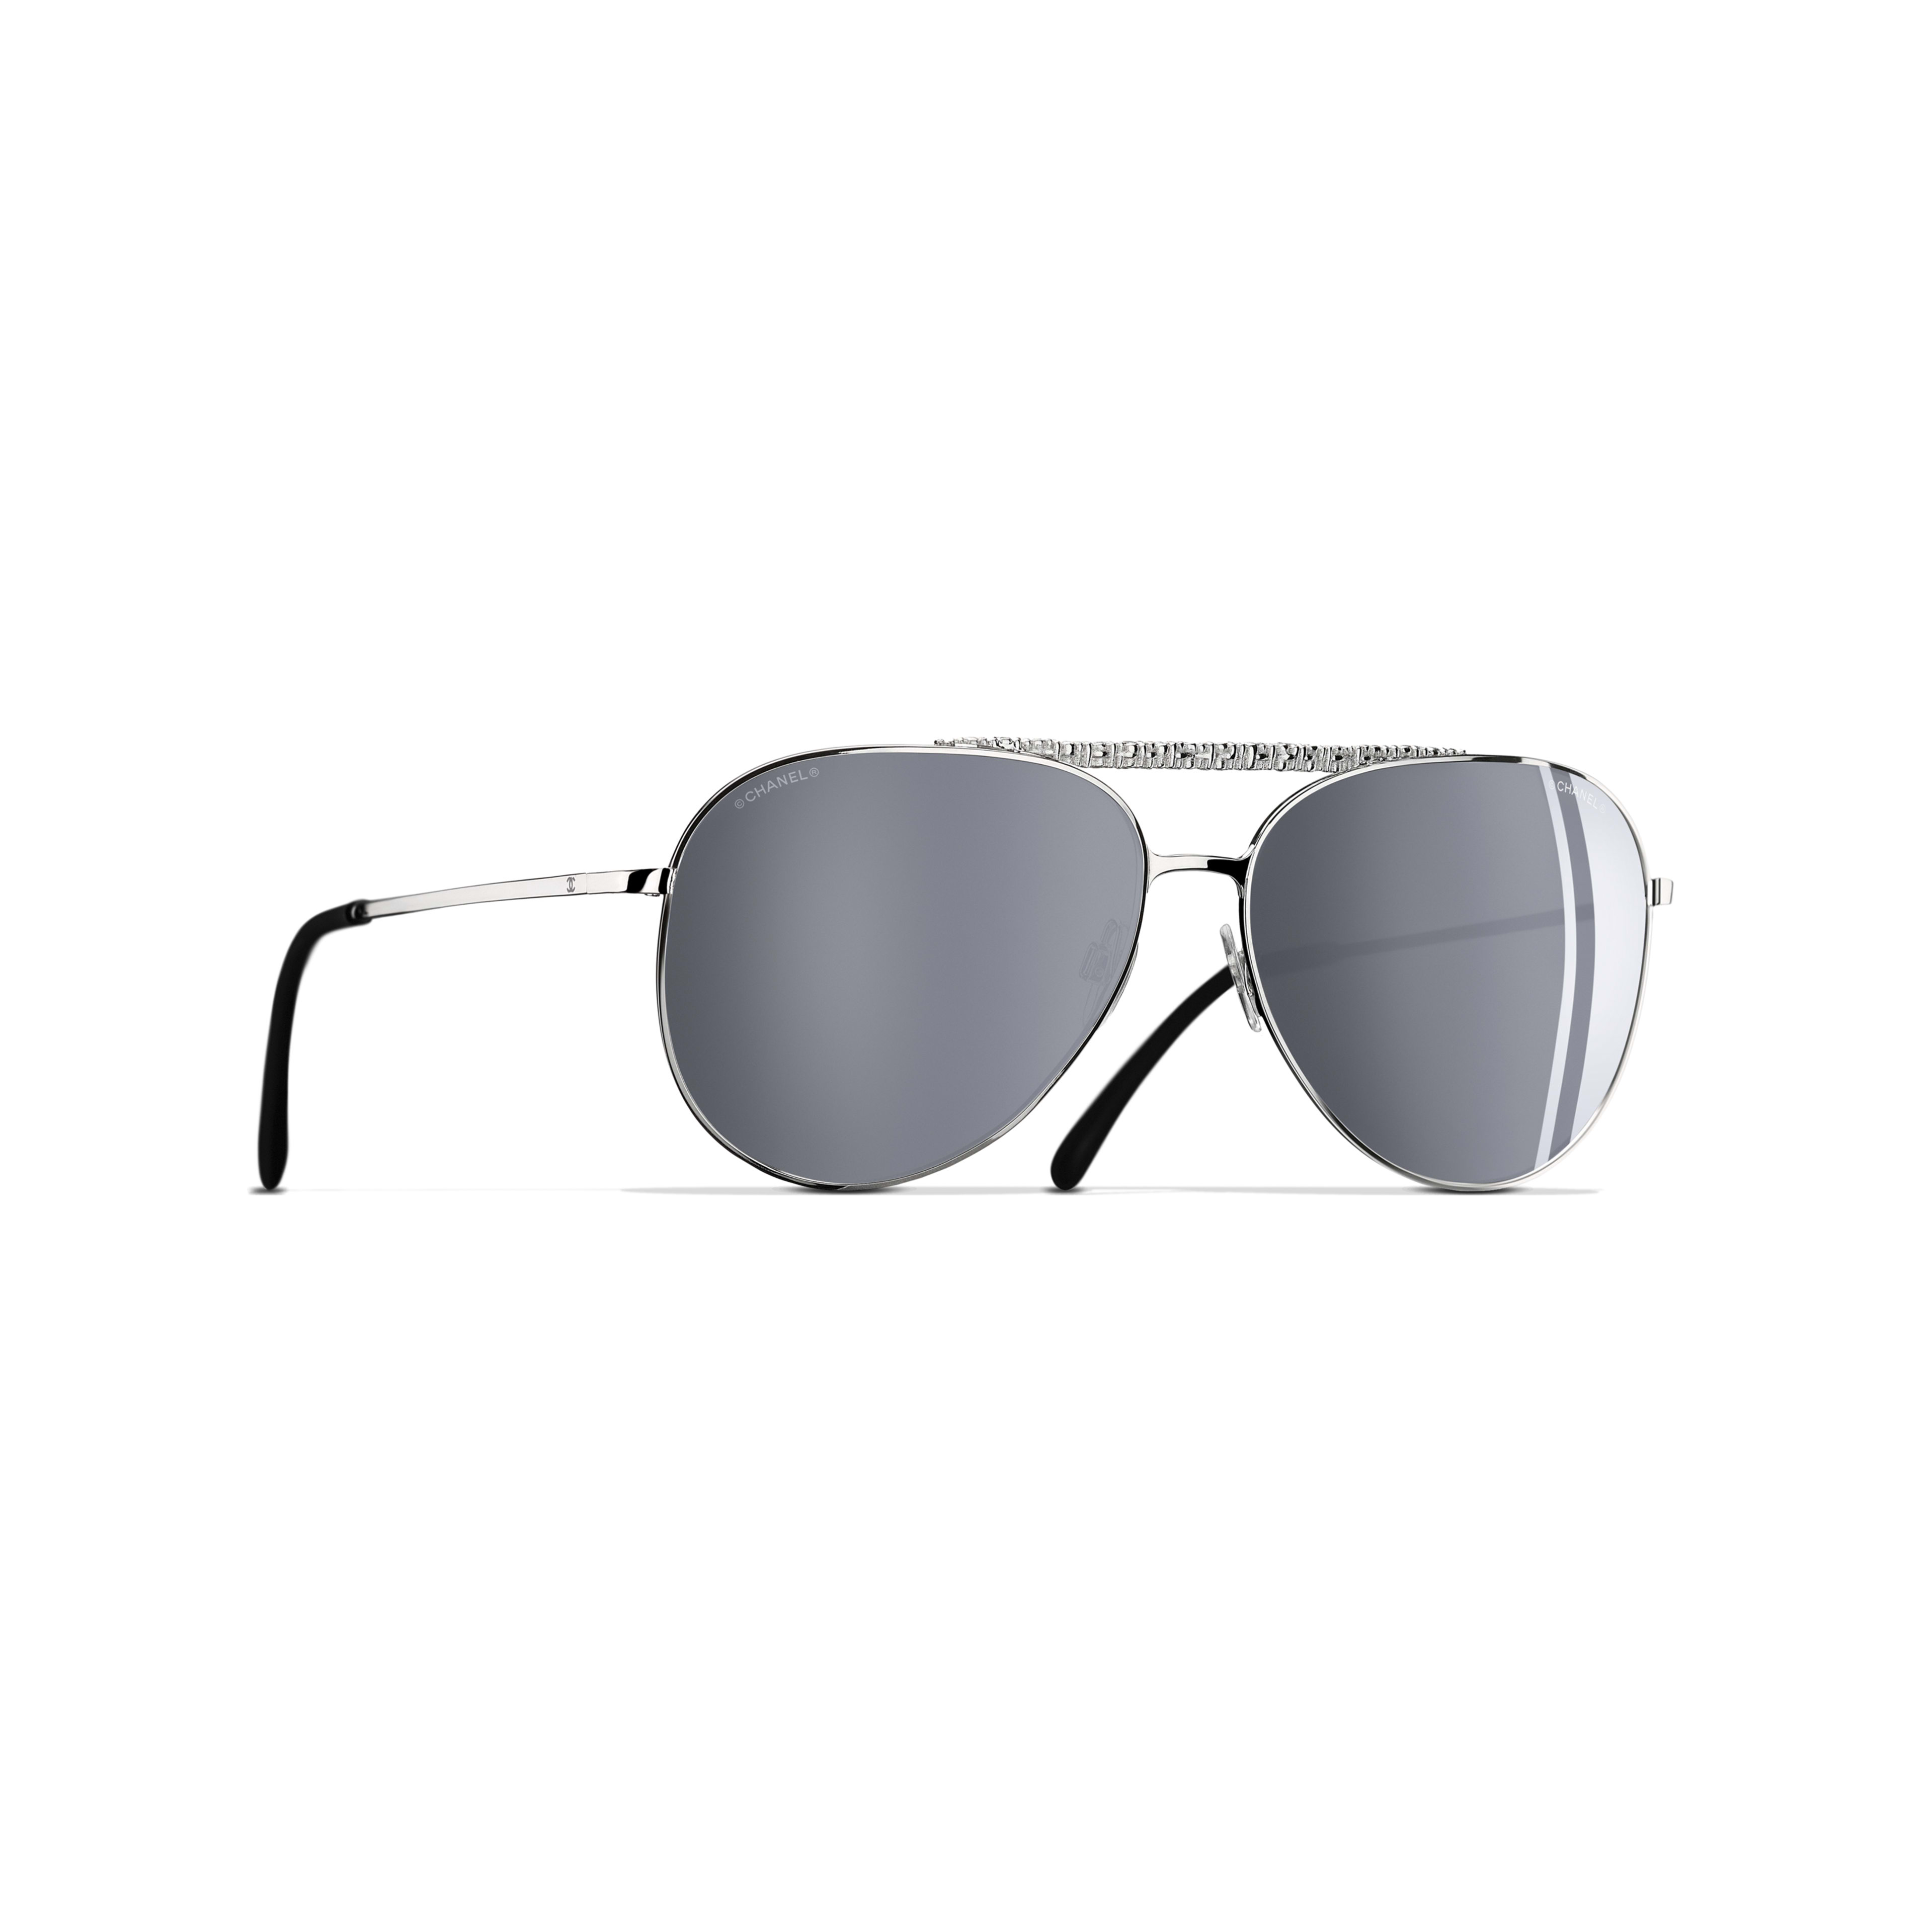 Pilot Sunglasses Metal Silver -                                               view 1 - see full sized version